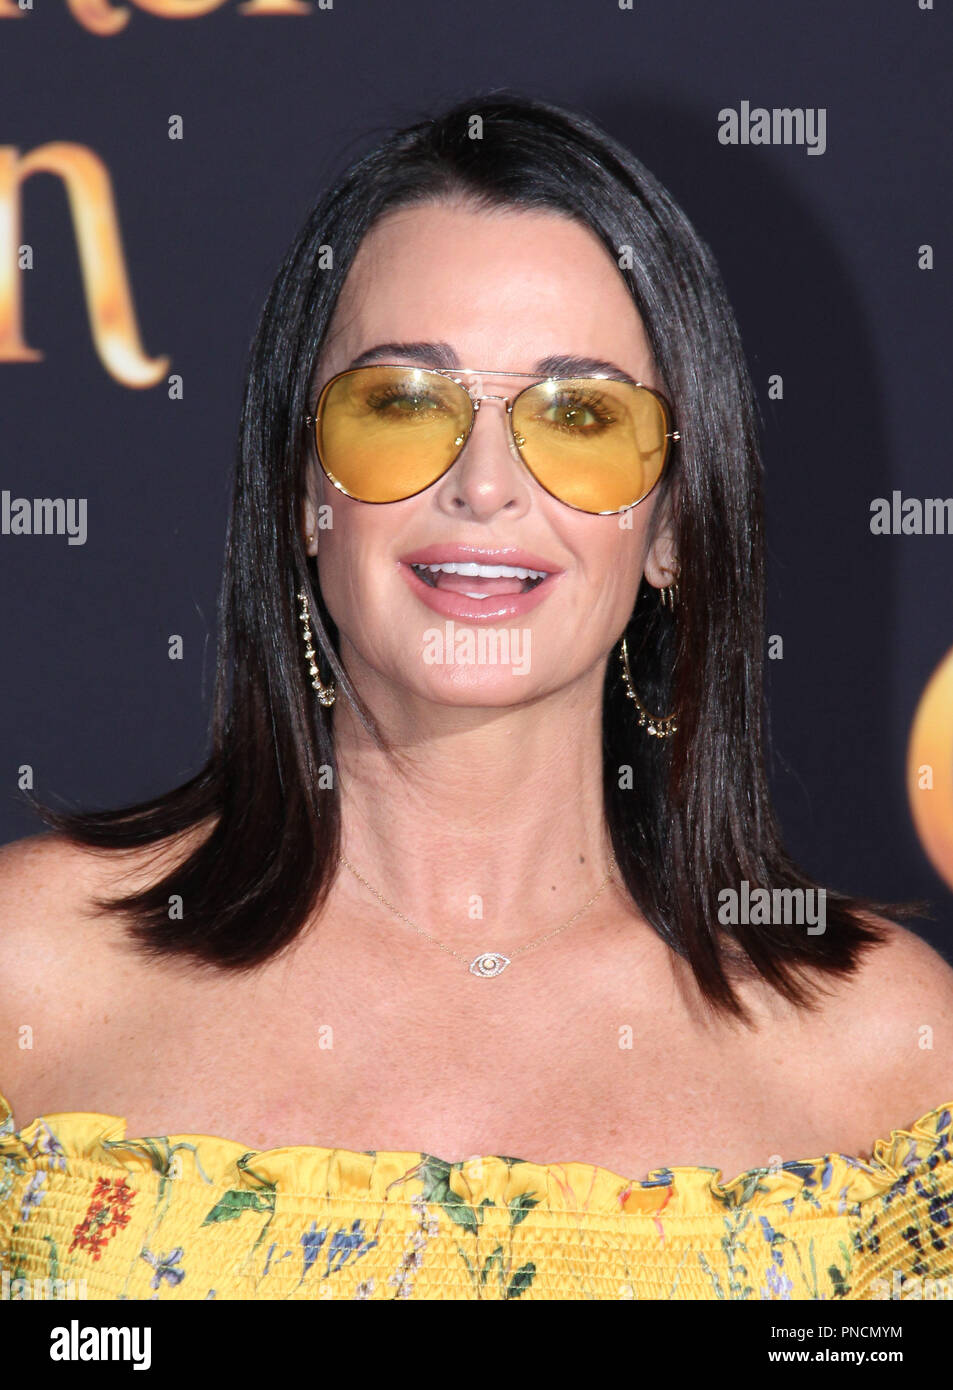 a1145c8df8f Kyle Richards at Disney s World Premiere of